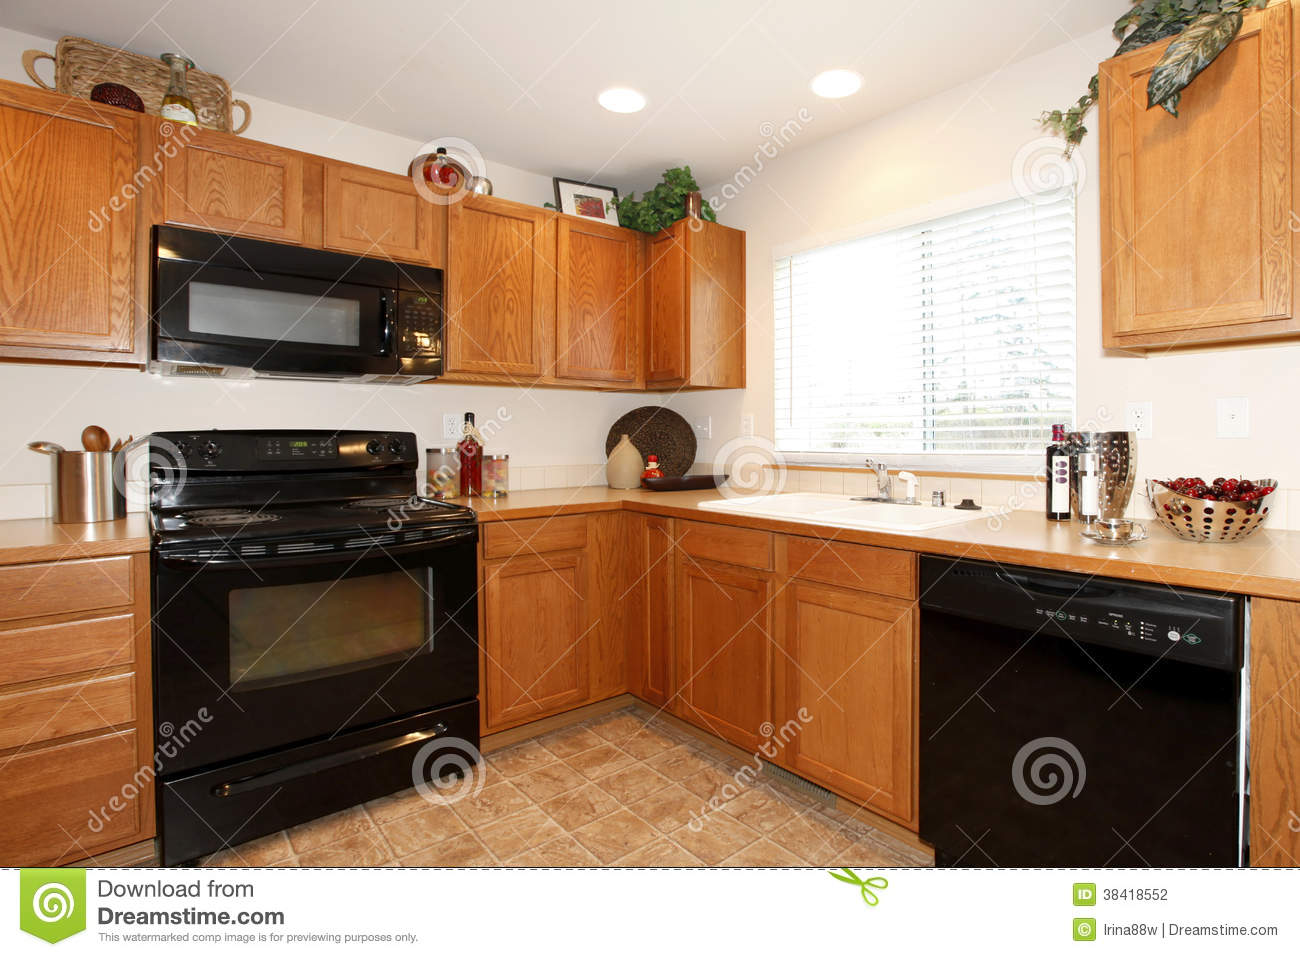 Brown kitchen cabinets with black appliances stock for Kitchen cabinets with black appliances